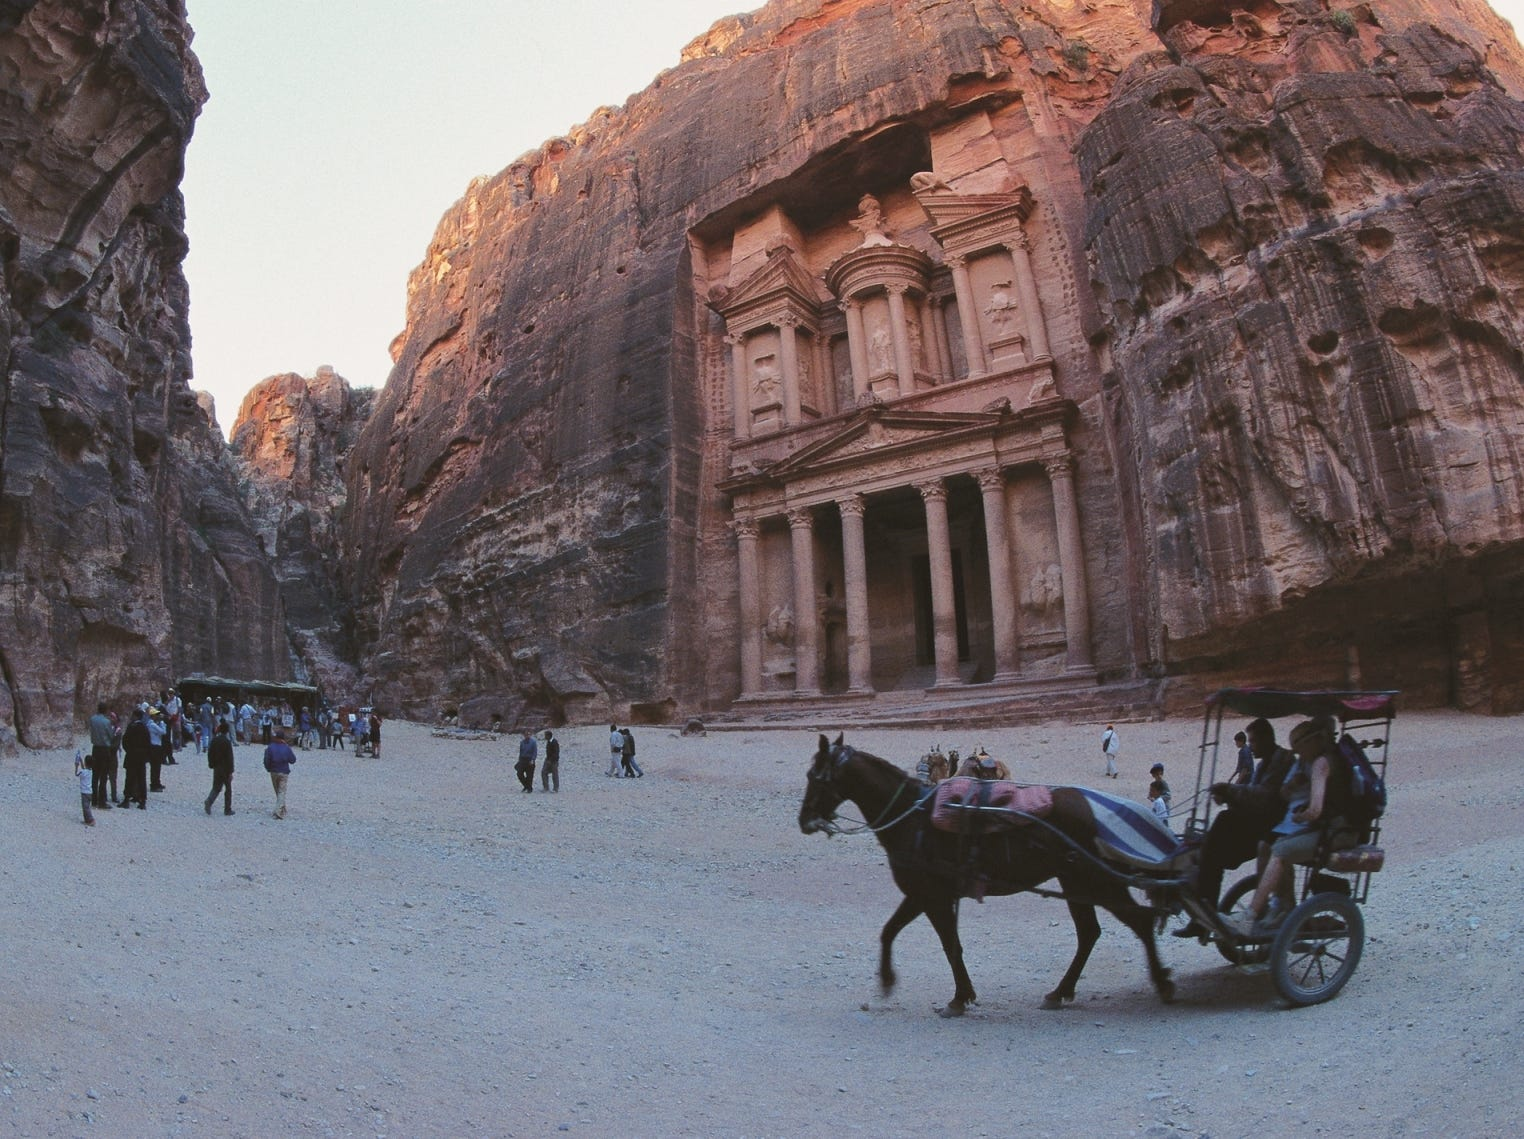 Petra is Jordan's ancient city carved from pink stone. Visitors enter through a twisty mile-long gorge called the Siq.